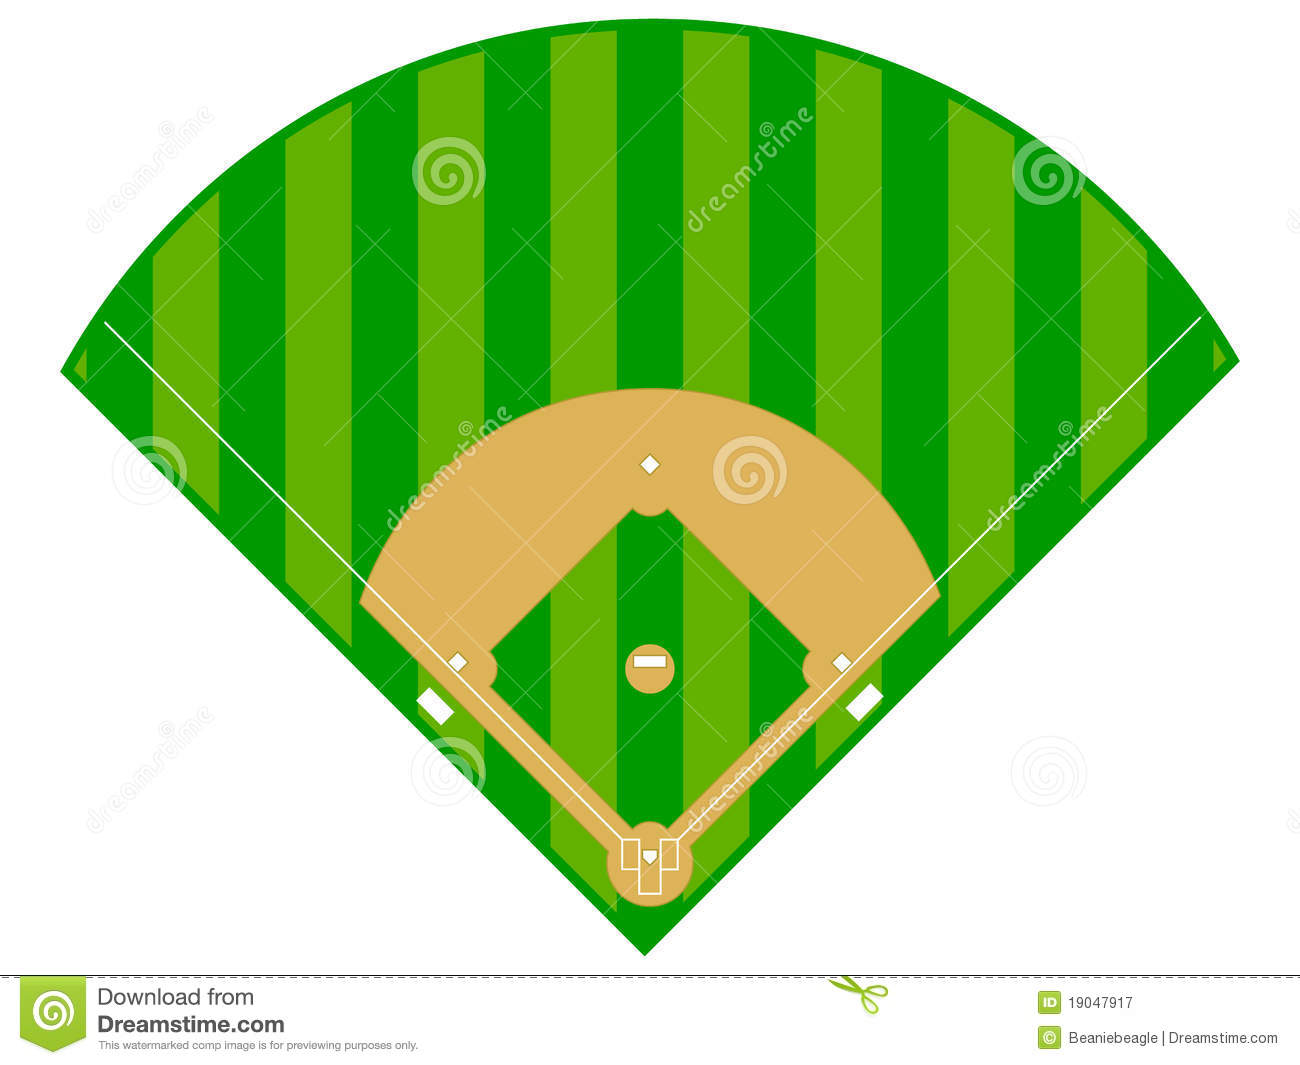 baseball field clipart clipart panda free clipart images rh clipartpanda com Baseball Field Clip Art Black and White baseball fielder clipart